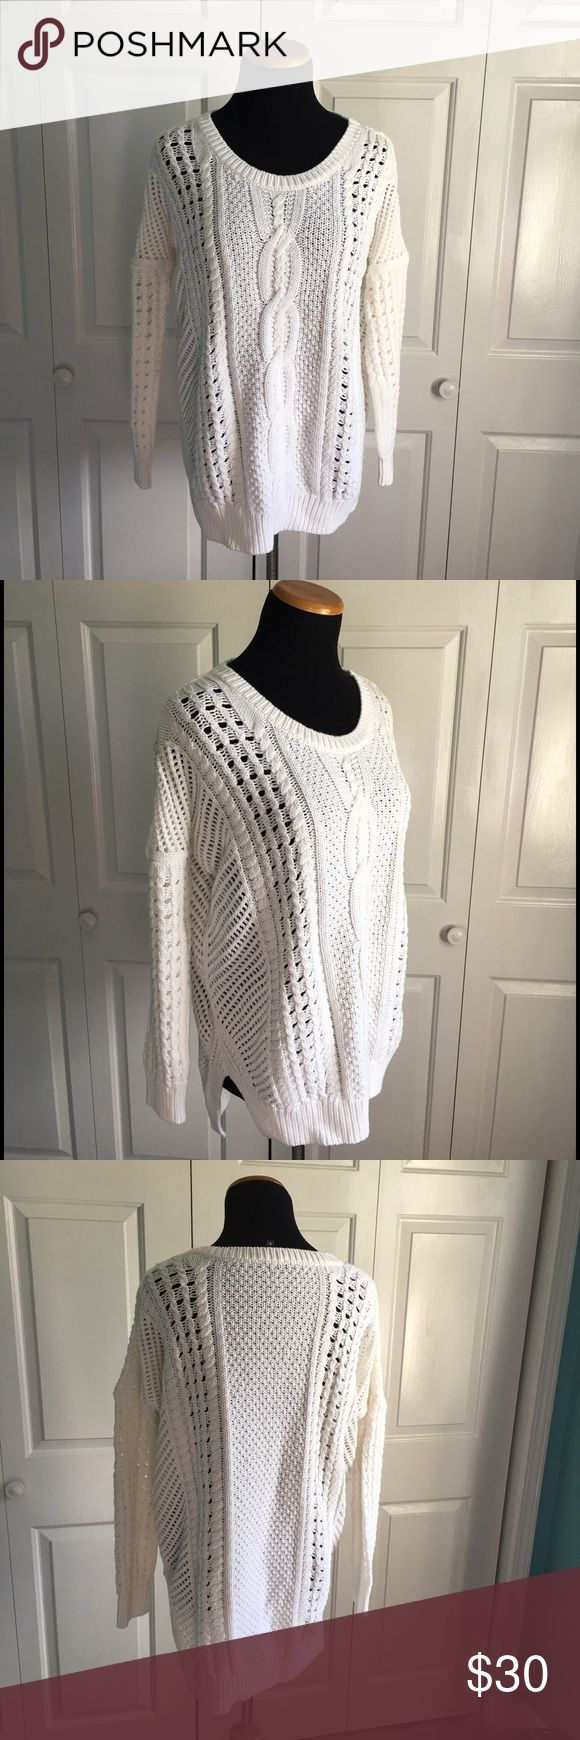 Express Oversized Cable Knit Sweater Oversized/boyfriend fit white Cable Knit Sweater. Could also fit a medium, IMO. Very soft and cozy and in perfect condition. Express Sweaters Crew & Scoop Necks